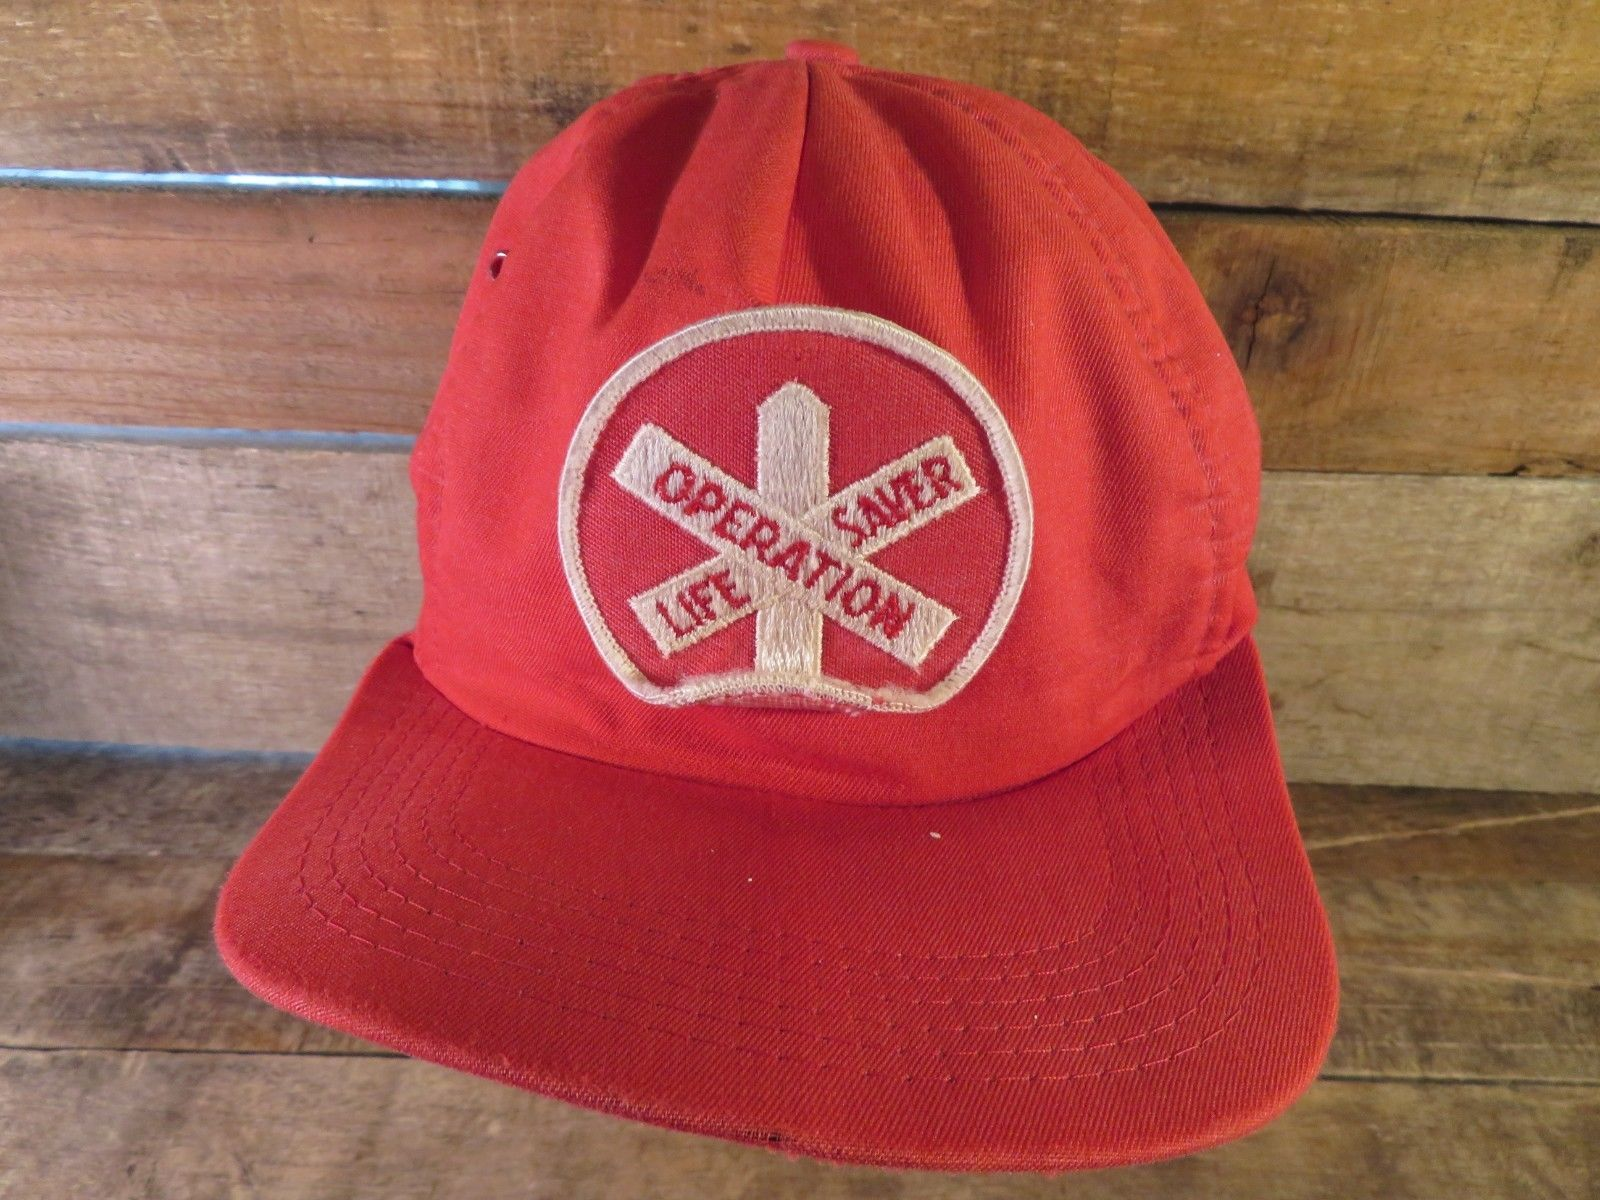 OPERATION LIFE SAVER Vintage Patch Made in USA Snapback Adult Cap Hat